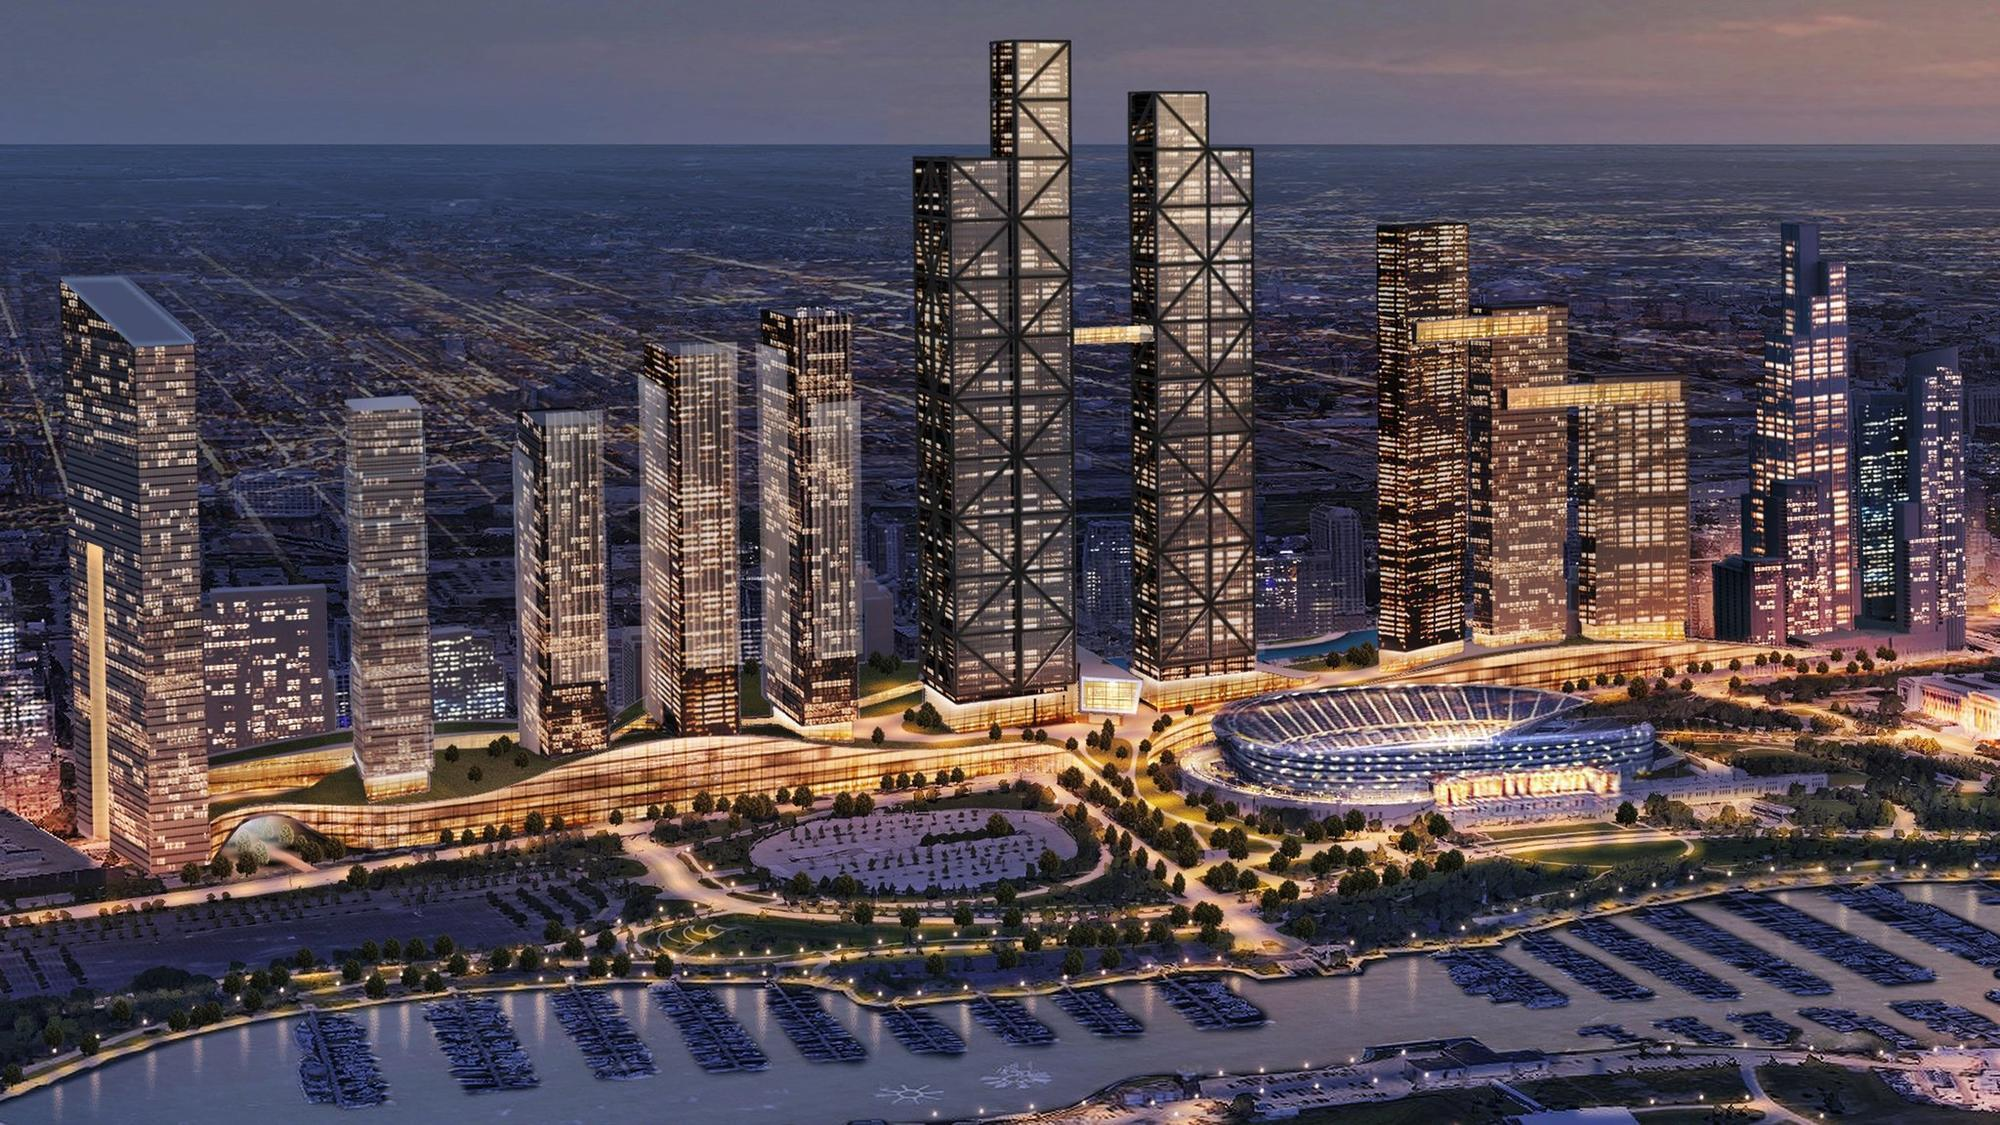 Changes sought for multibillion-dollar development proposed over train tracks near Soldier Field